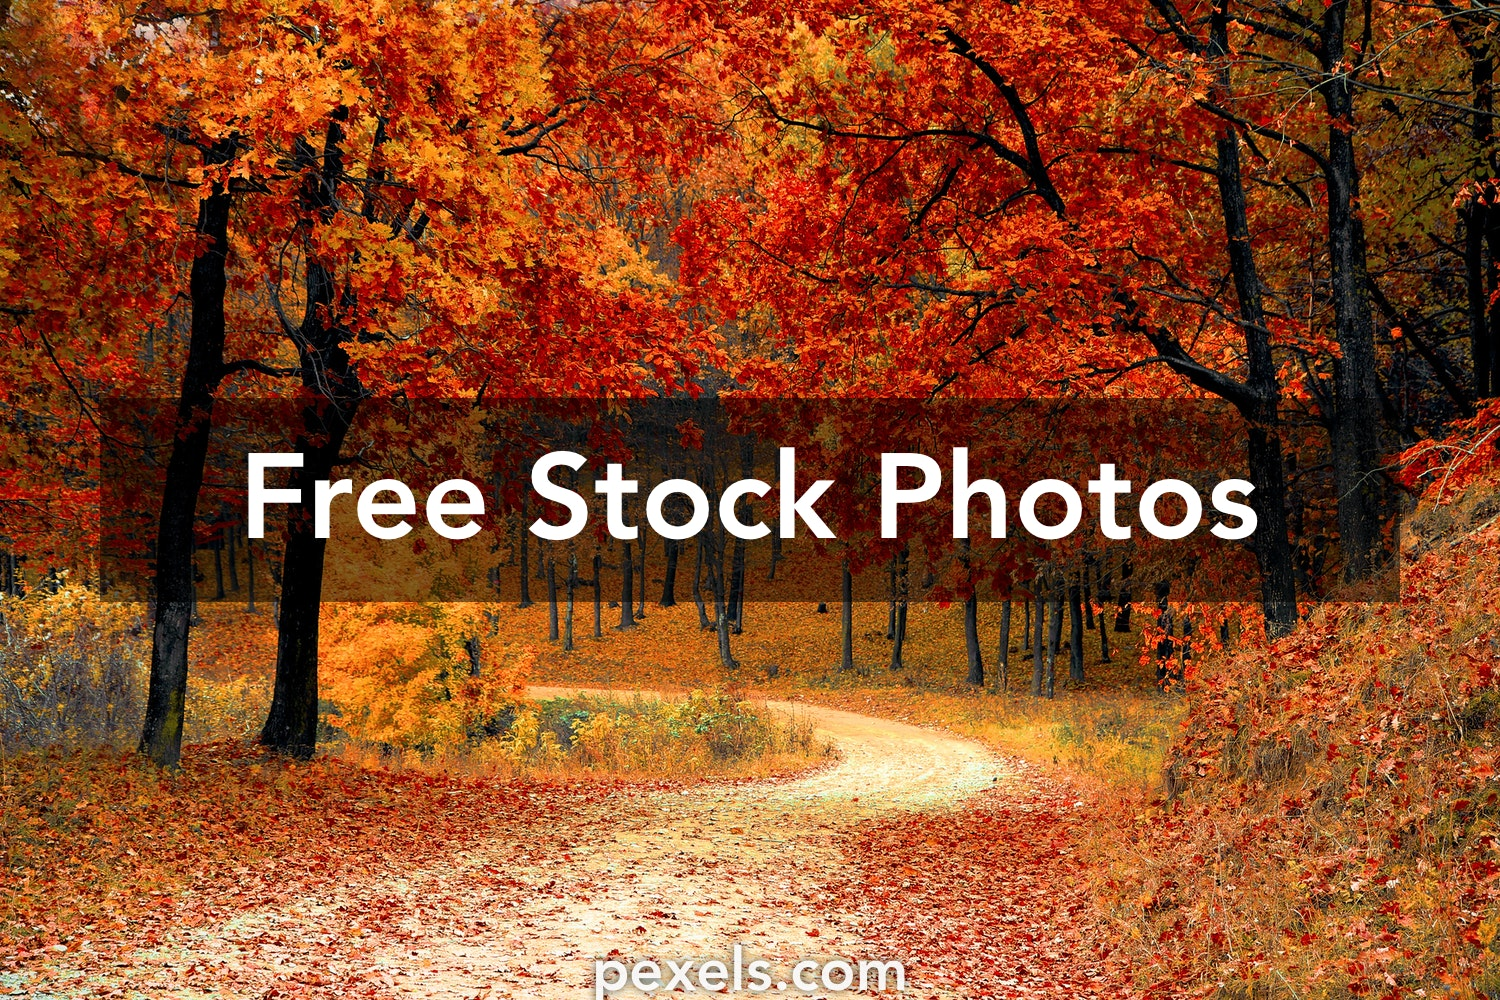 1000 Amazing Autumn Wallpaper Photos Pexels Free Stock Photos